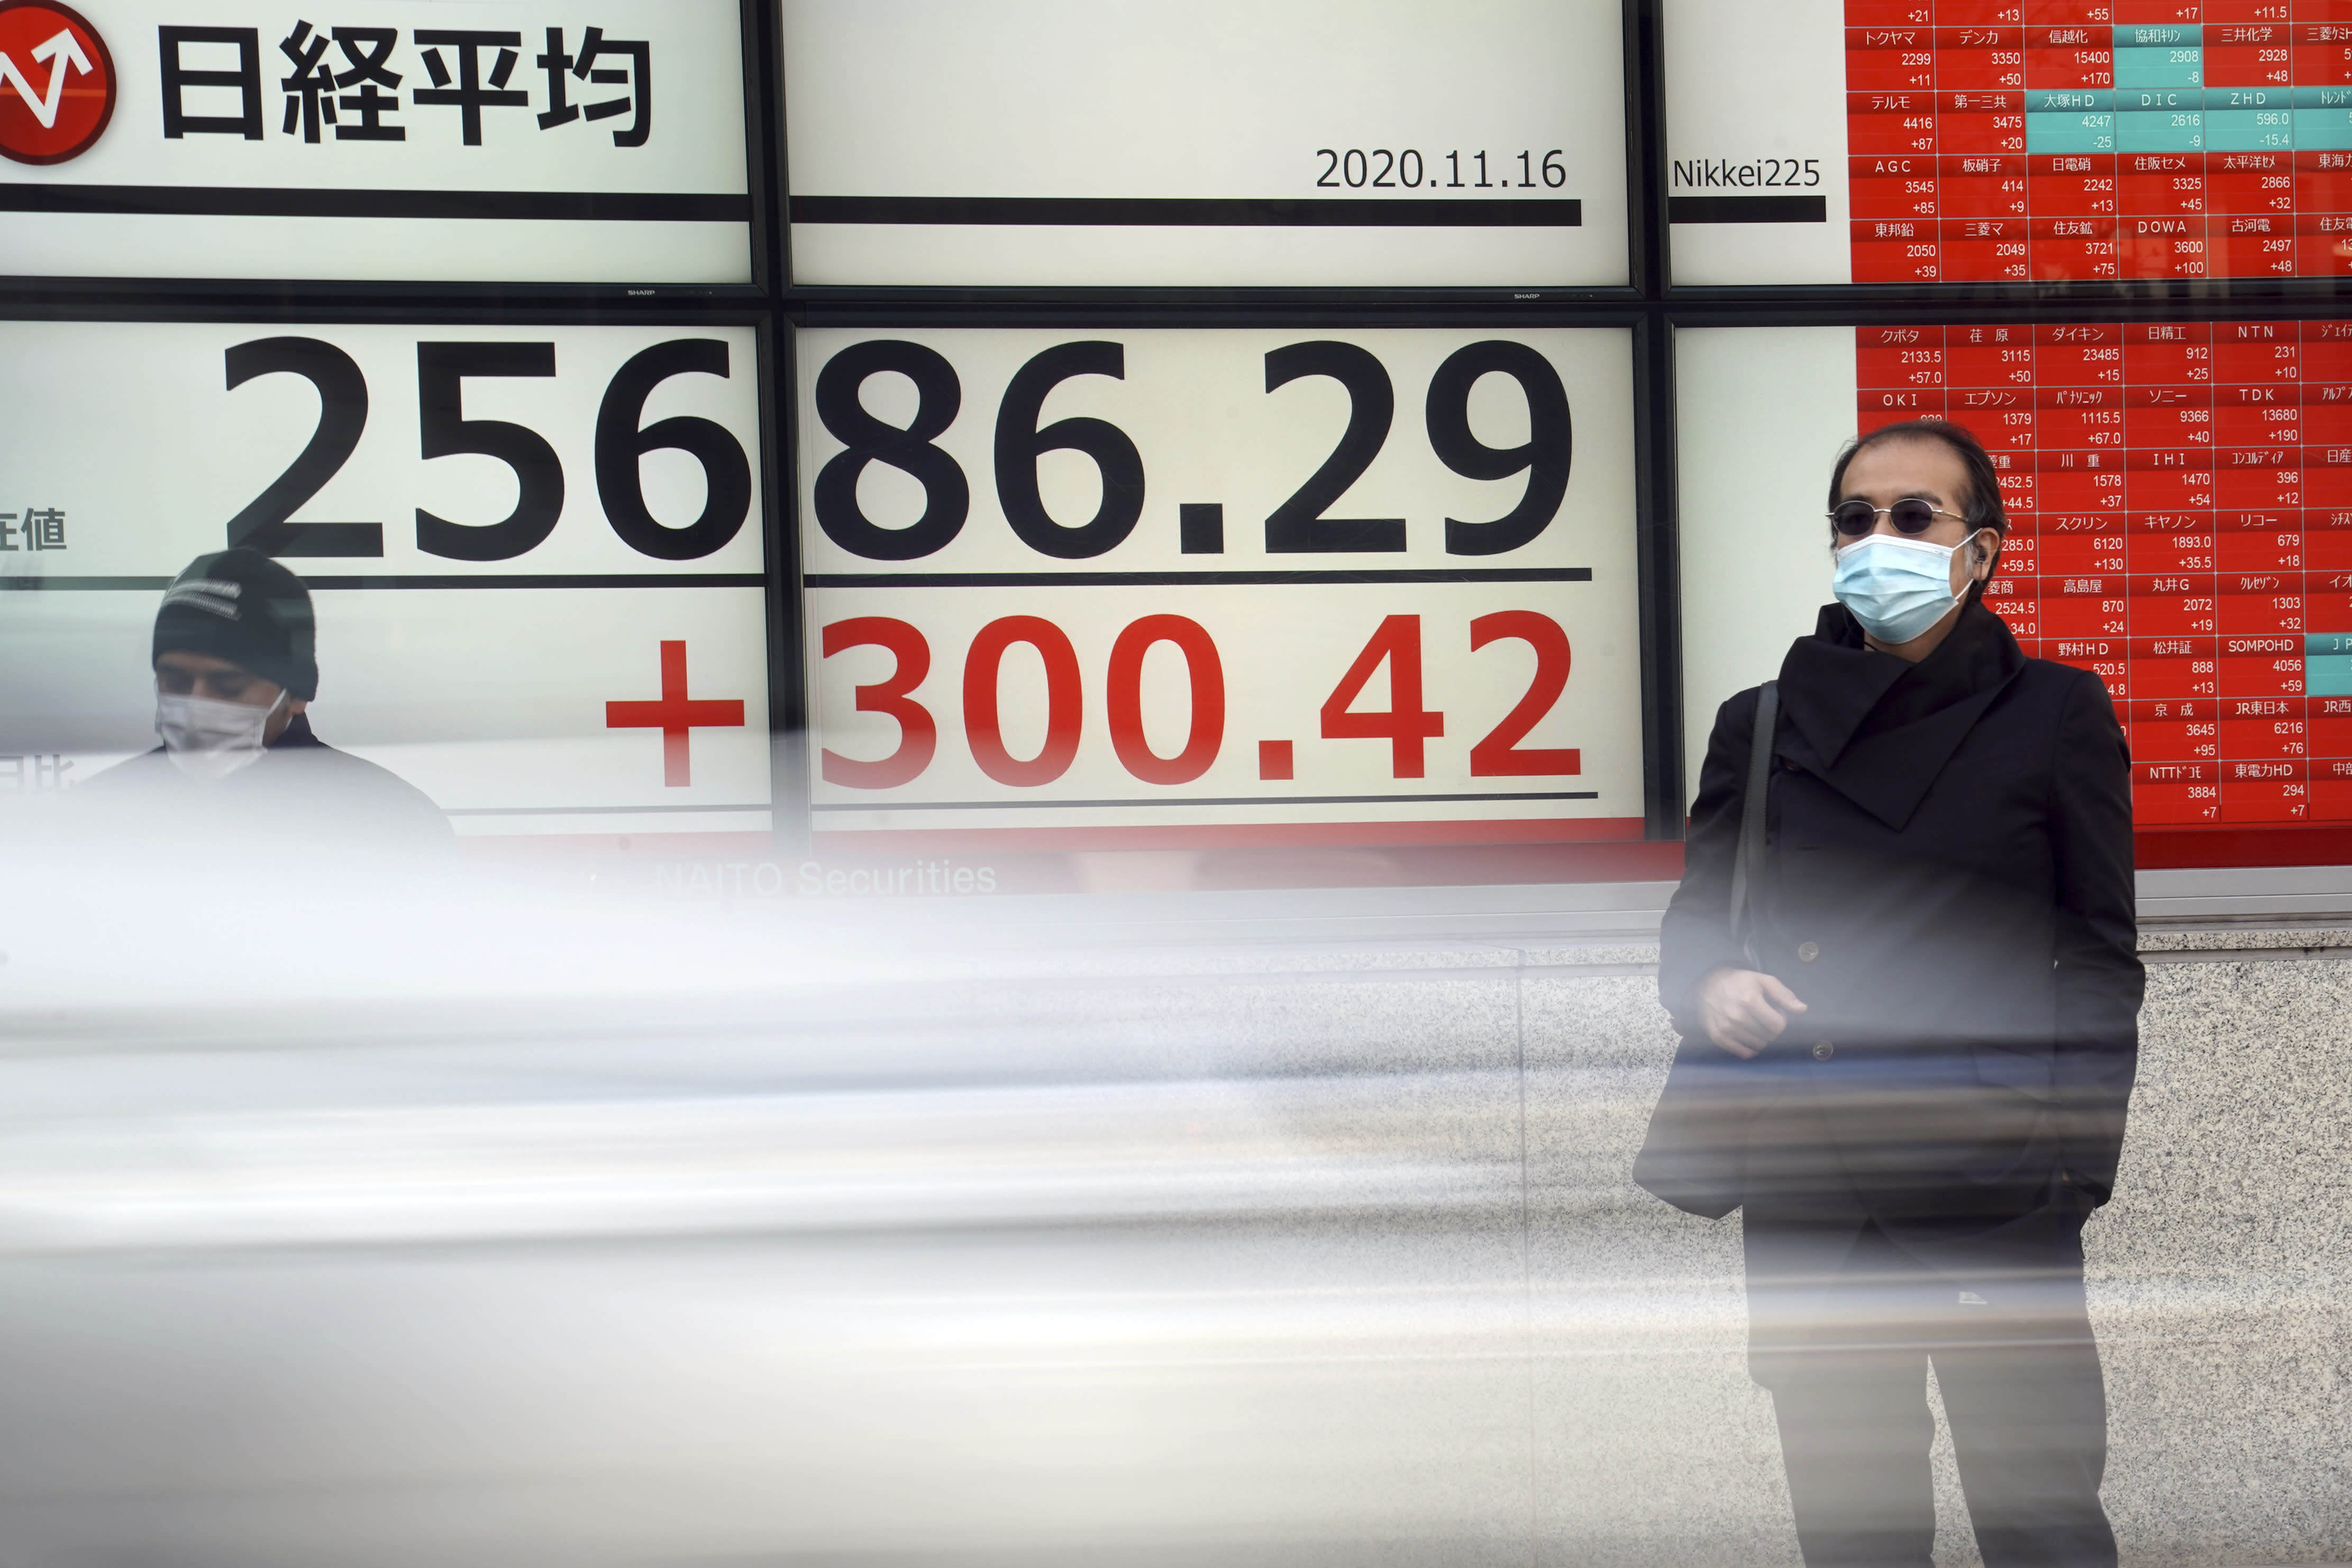 Asian shares climb after S&P 500 record, despite virus woes